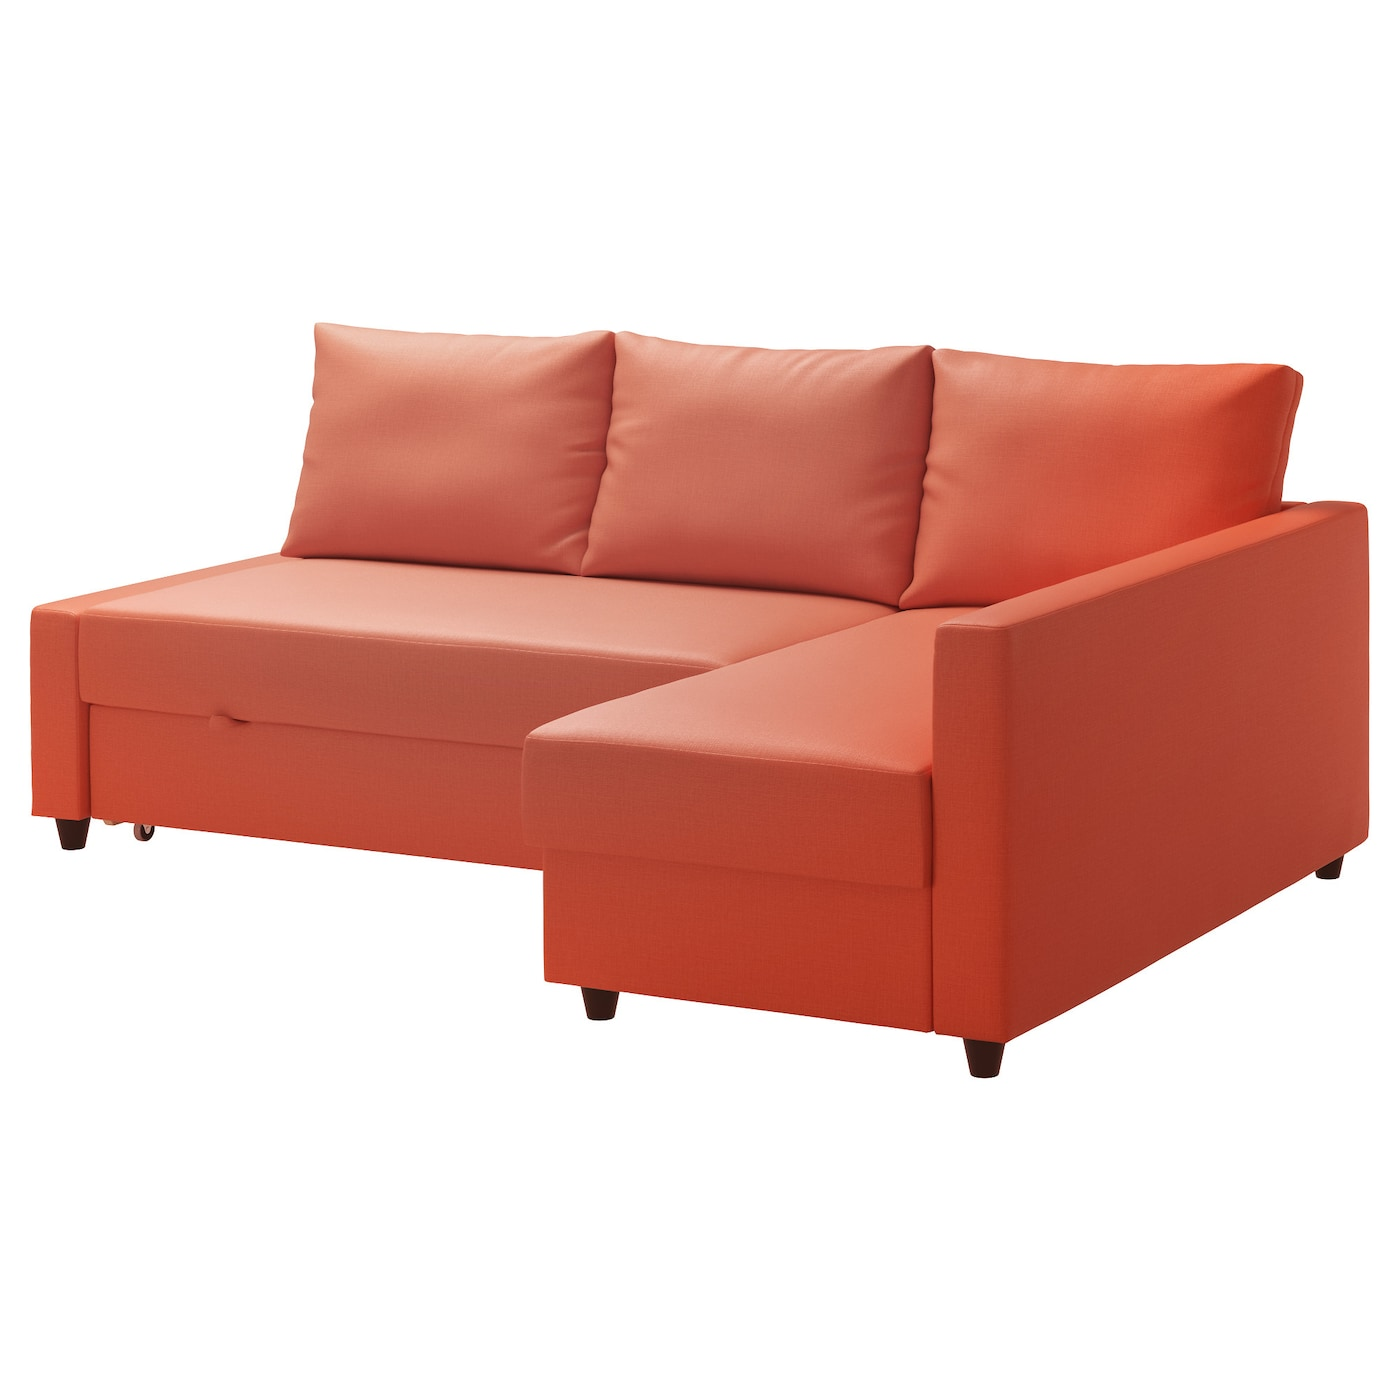 Corner Sofa Bed With Storage Amazon